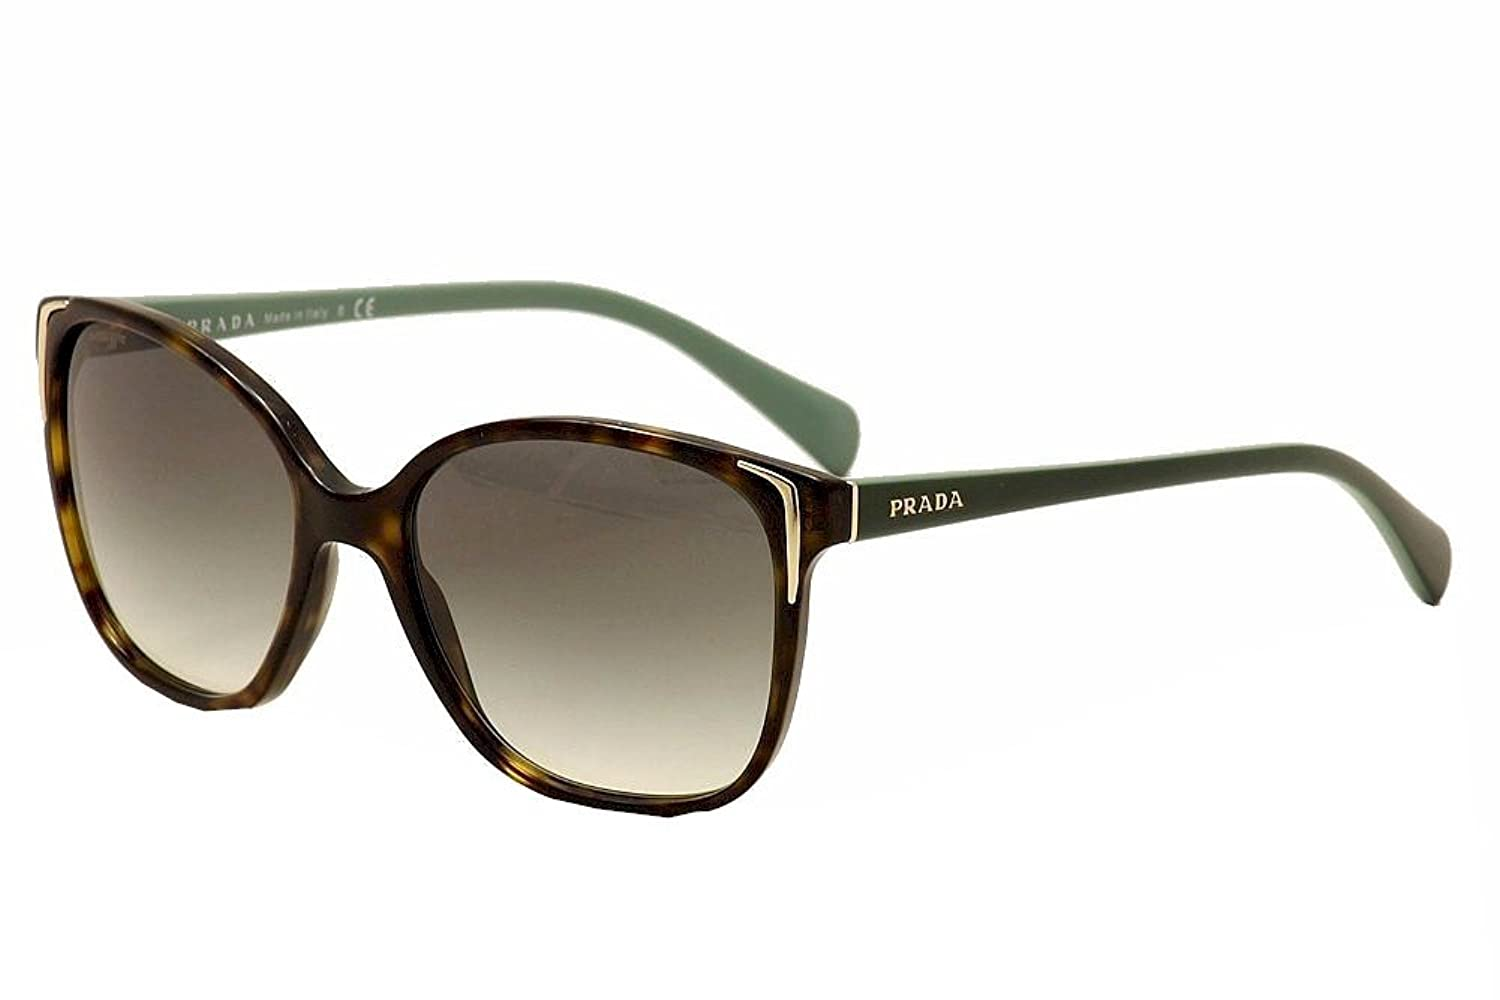 c10509ec2f07 Prada Sunglasses Price List In India